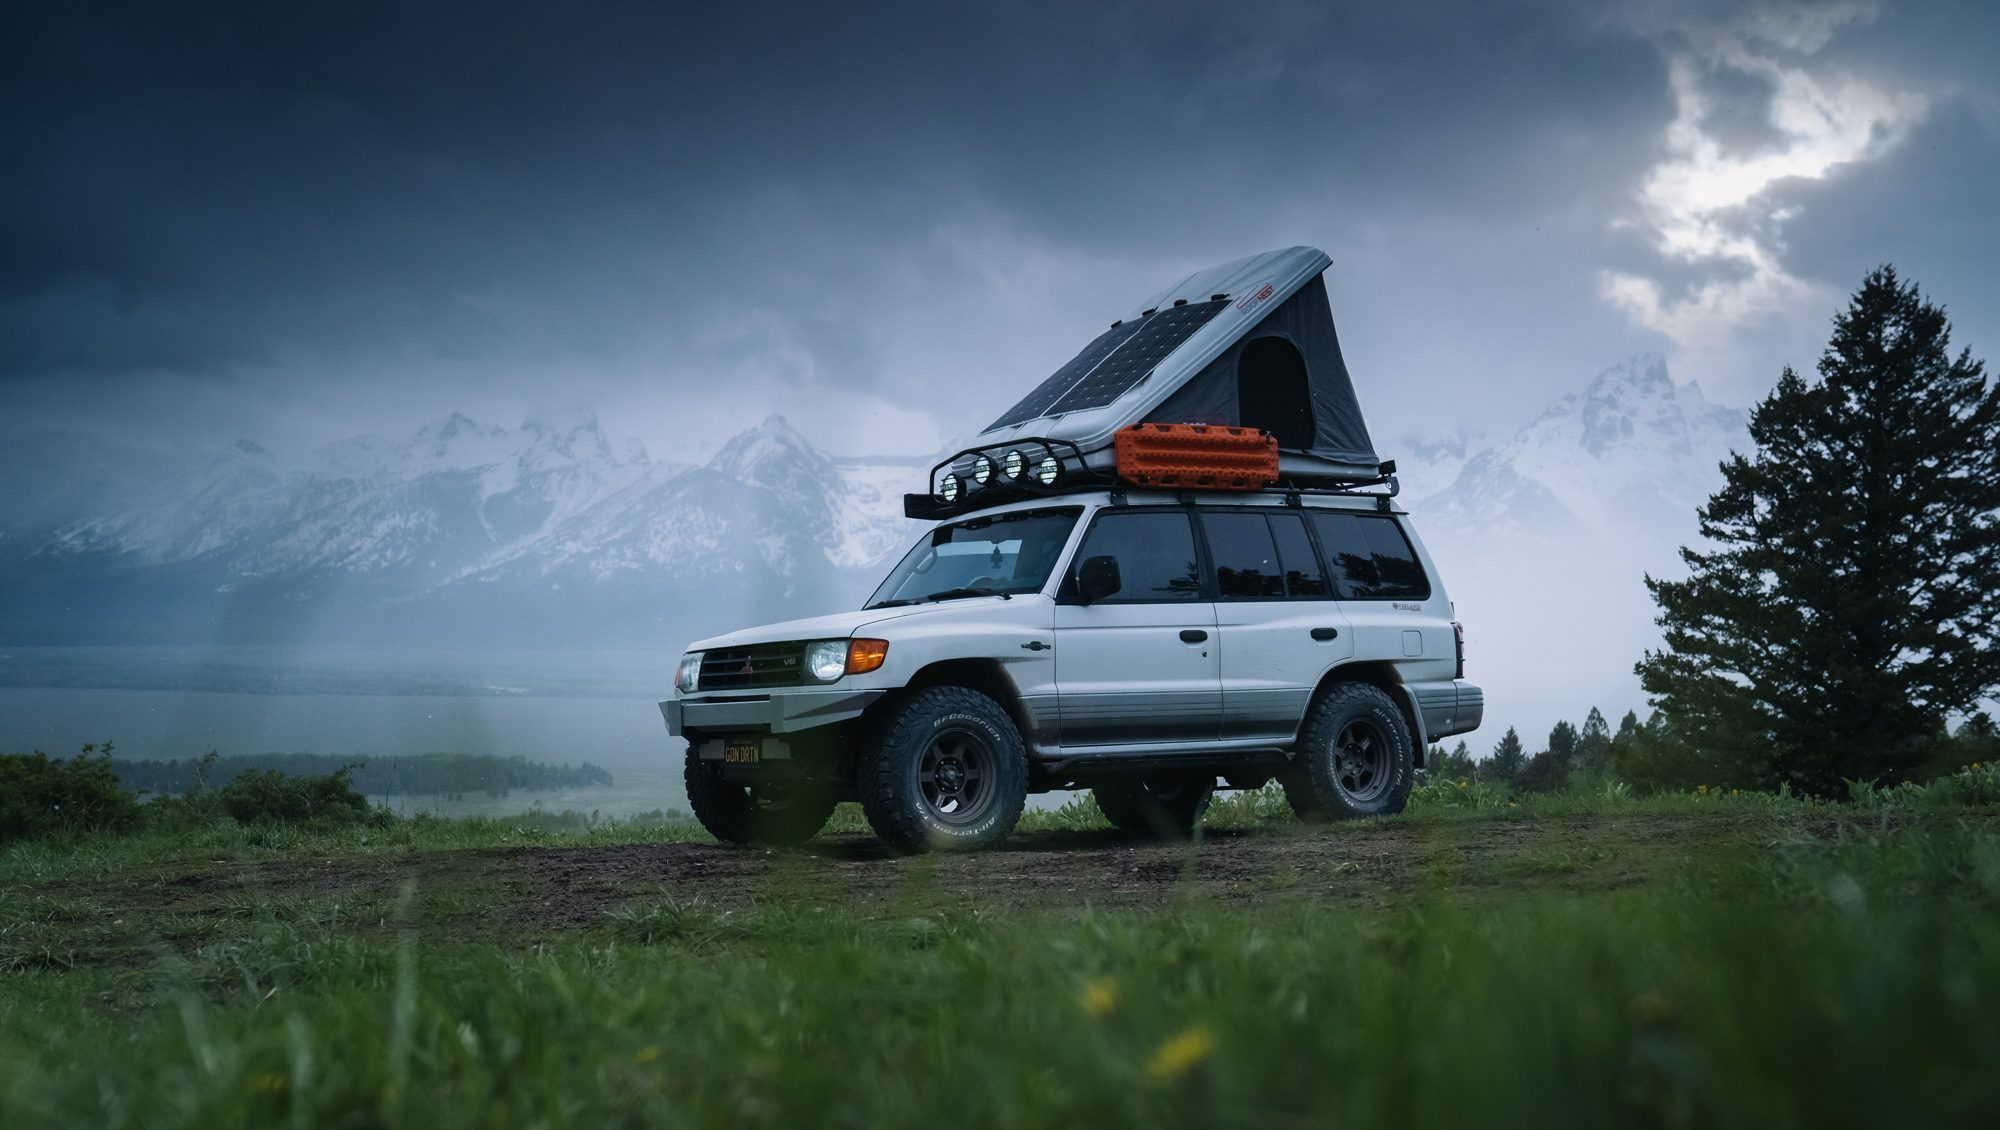 Reviewed: Roofnest Sparrow Eye Roof Tent